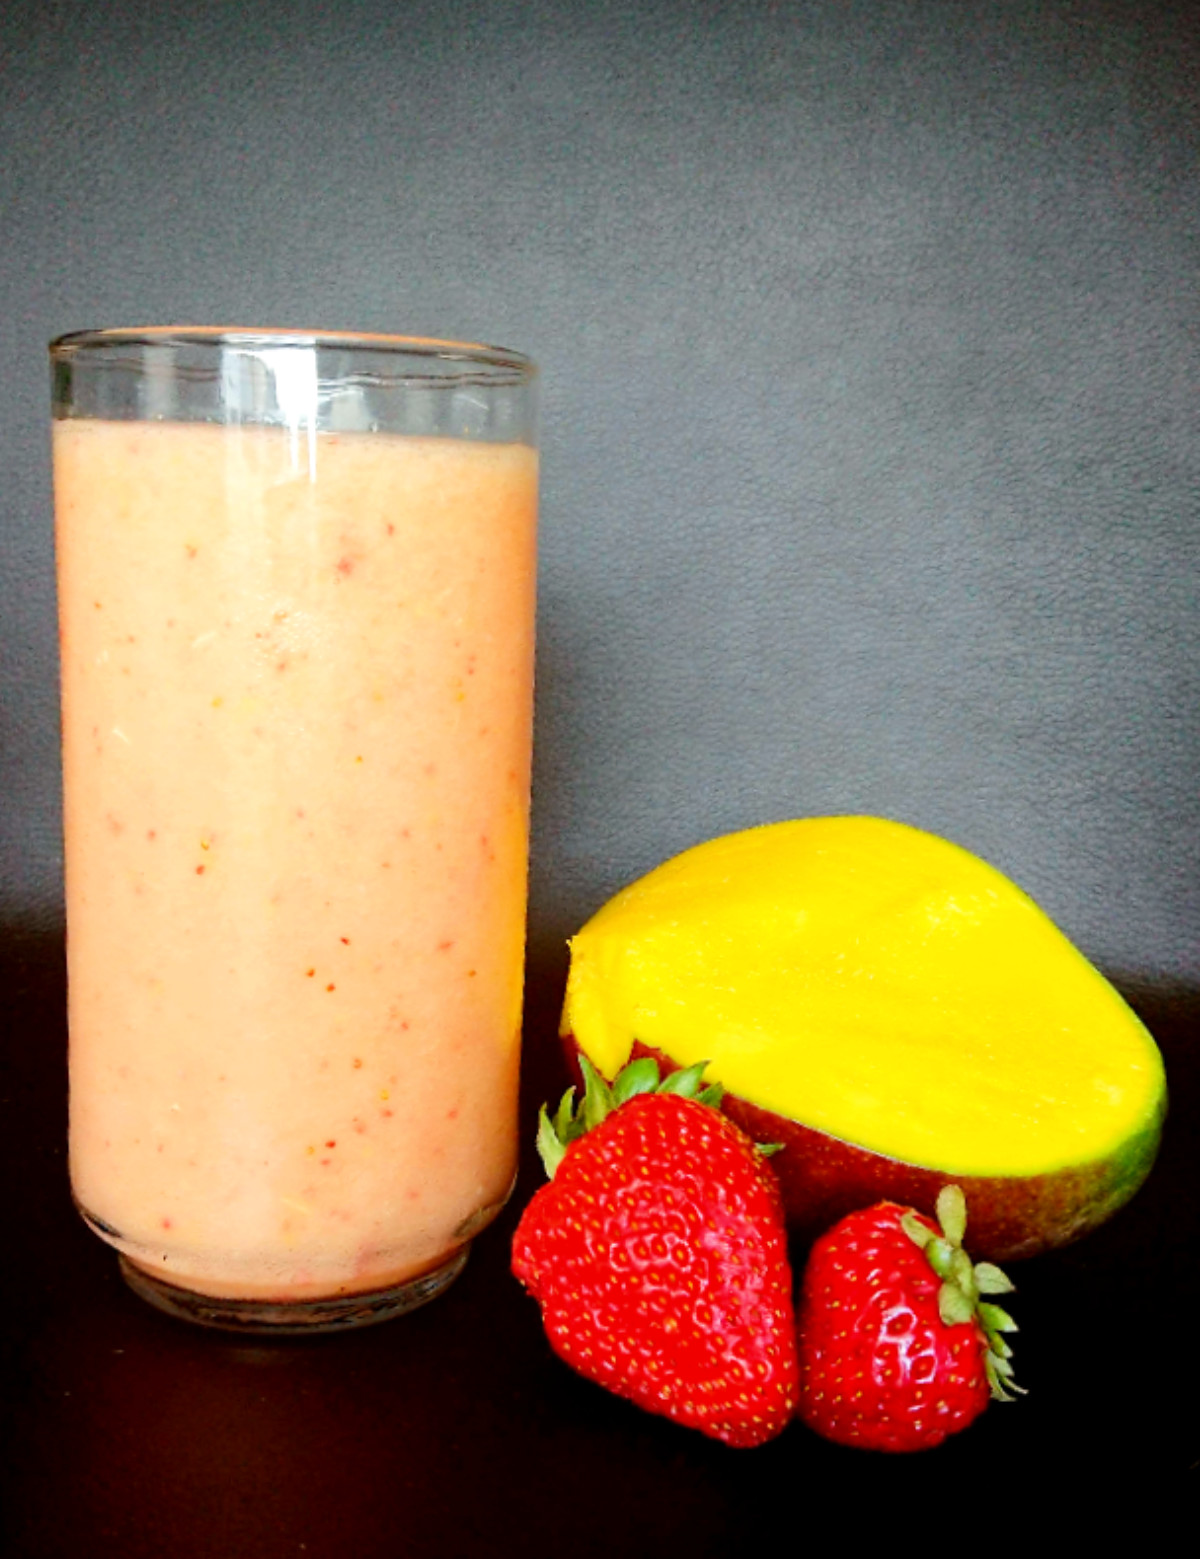 Fruit mocktail in a glass with mango and strawberries